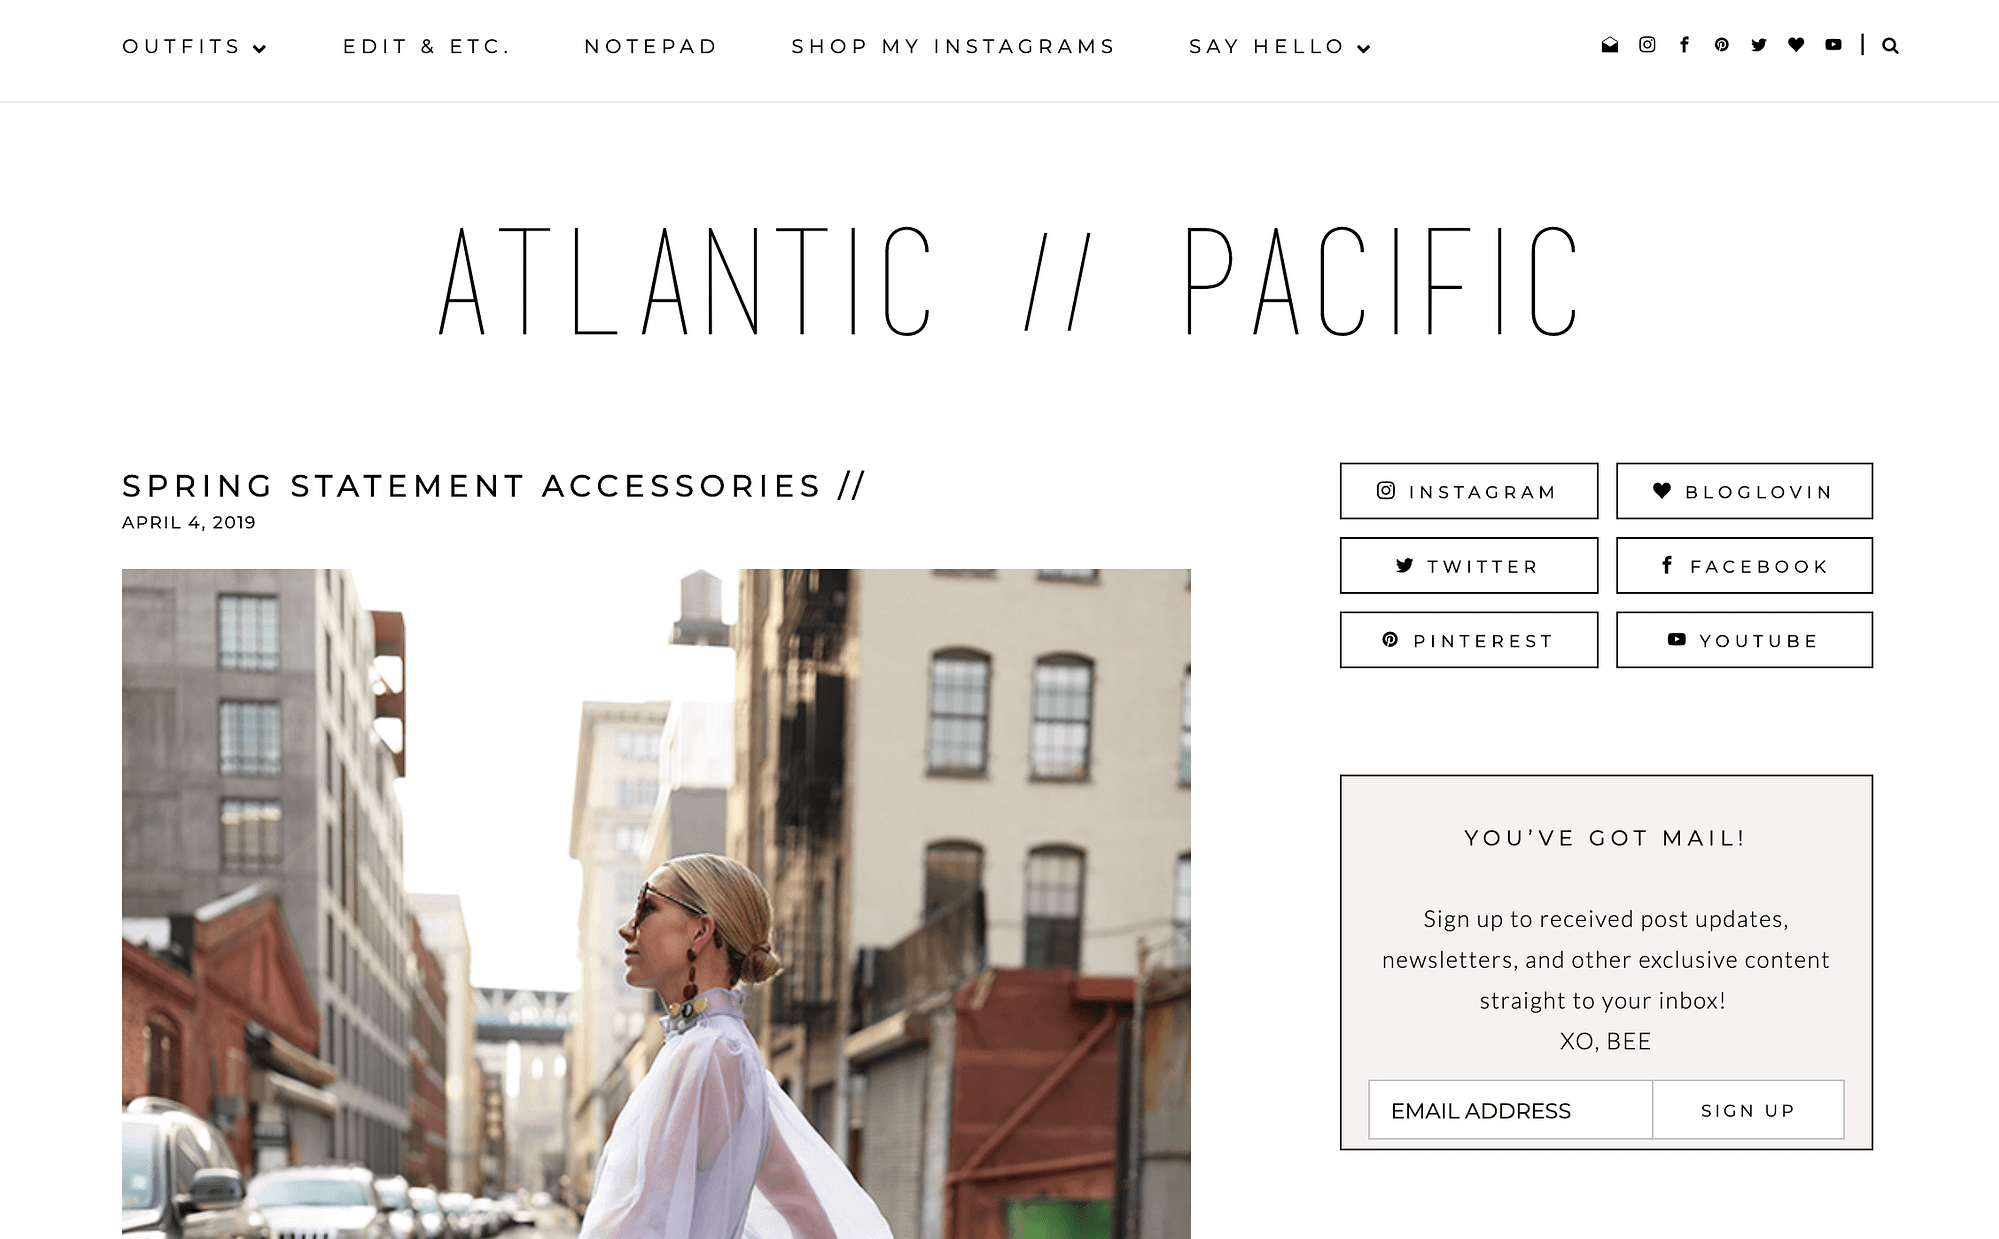 The Atlantic Pacific fashion blog.